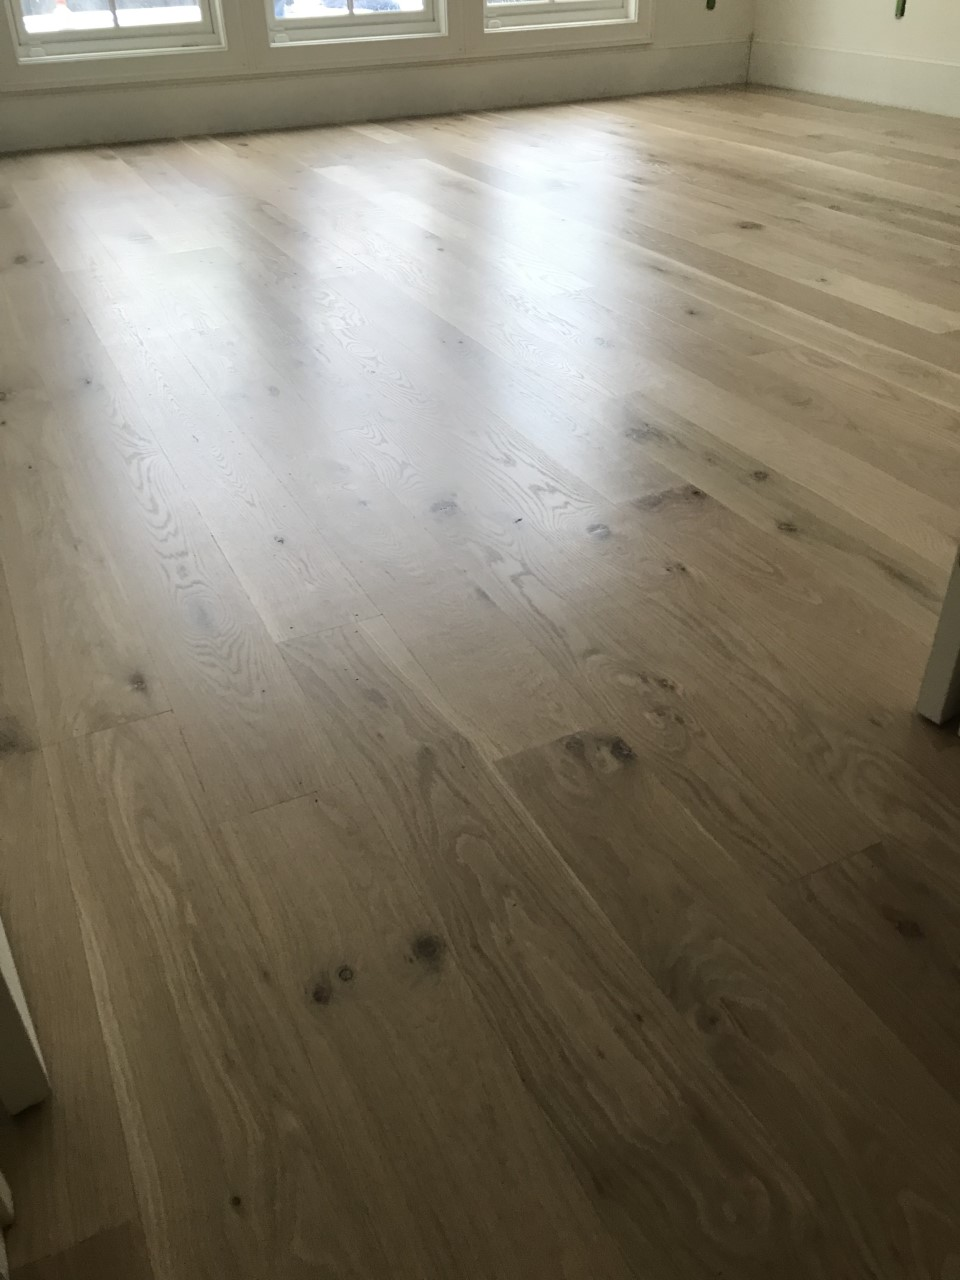 This is a photo of a front room with white oak flooring with a satin finish. It has a weather washed appearance.